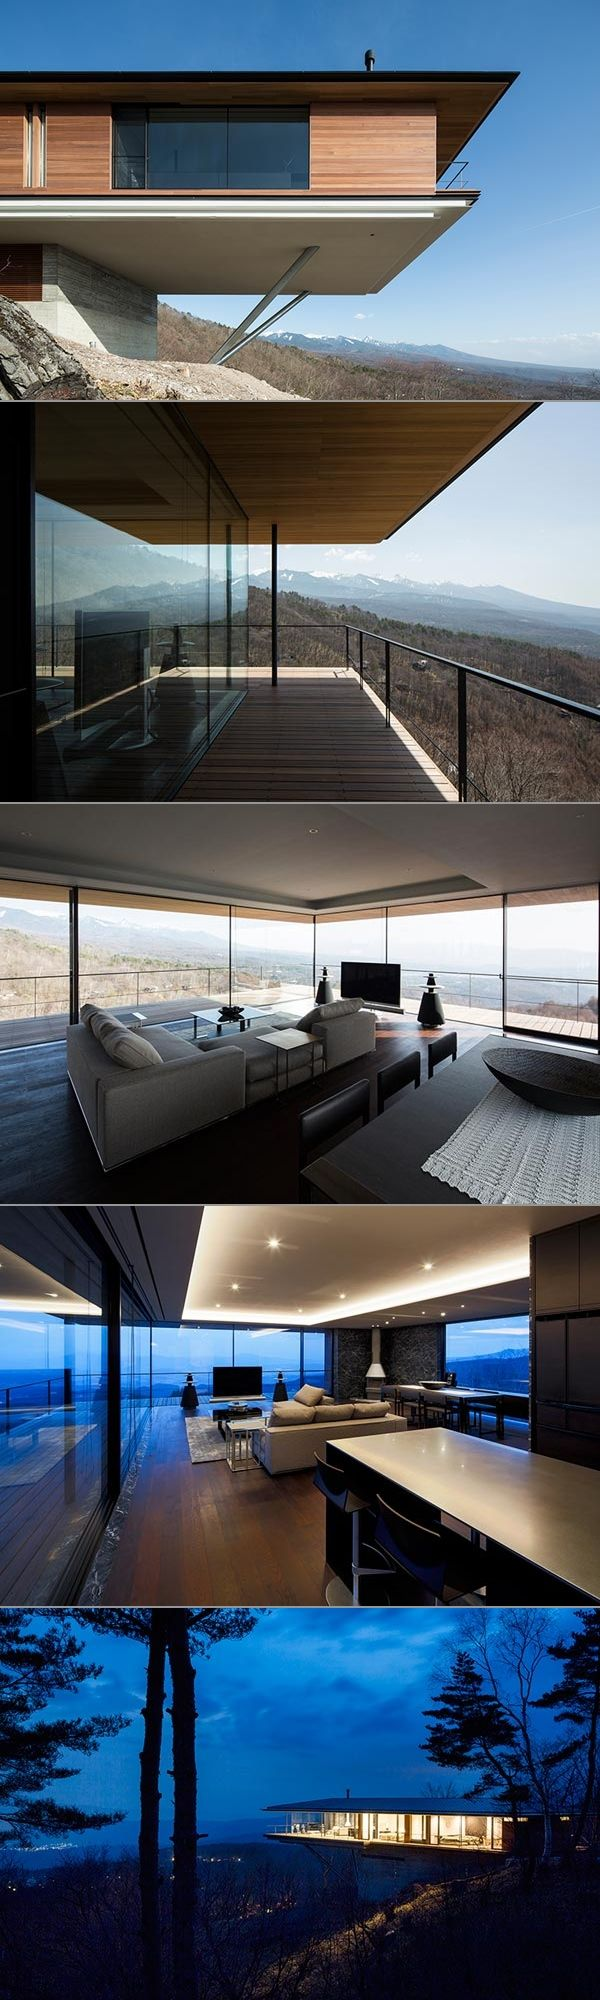 1555 best images about Architecture on Pinterest Luxury decor